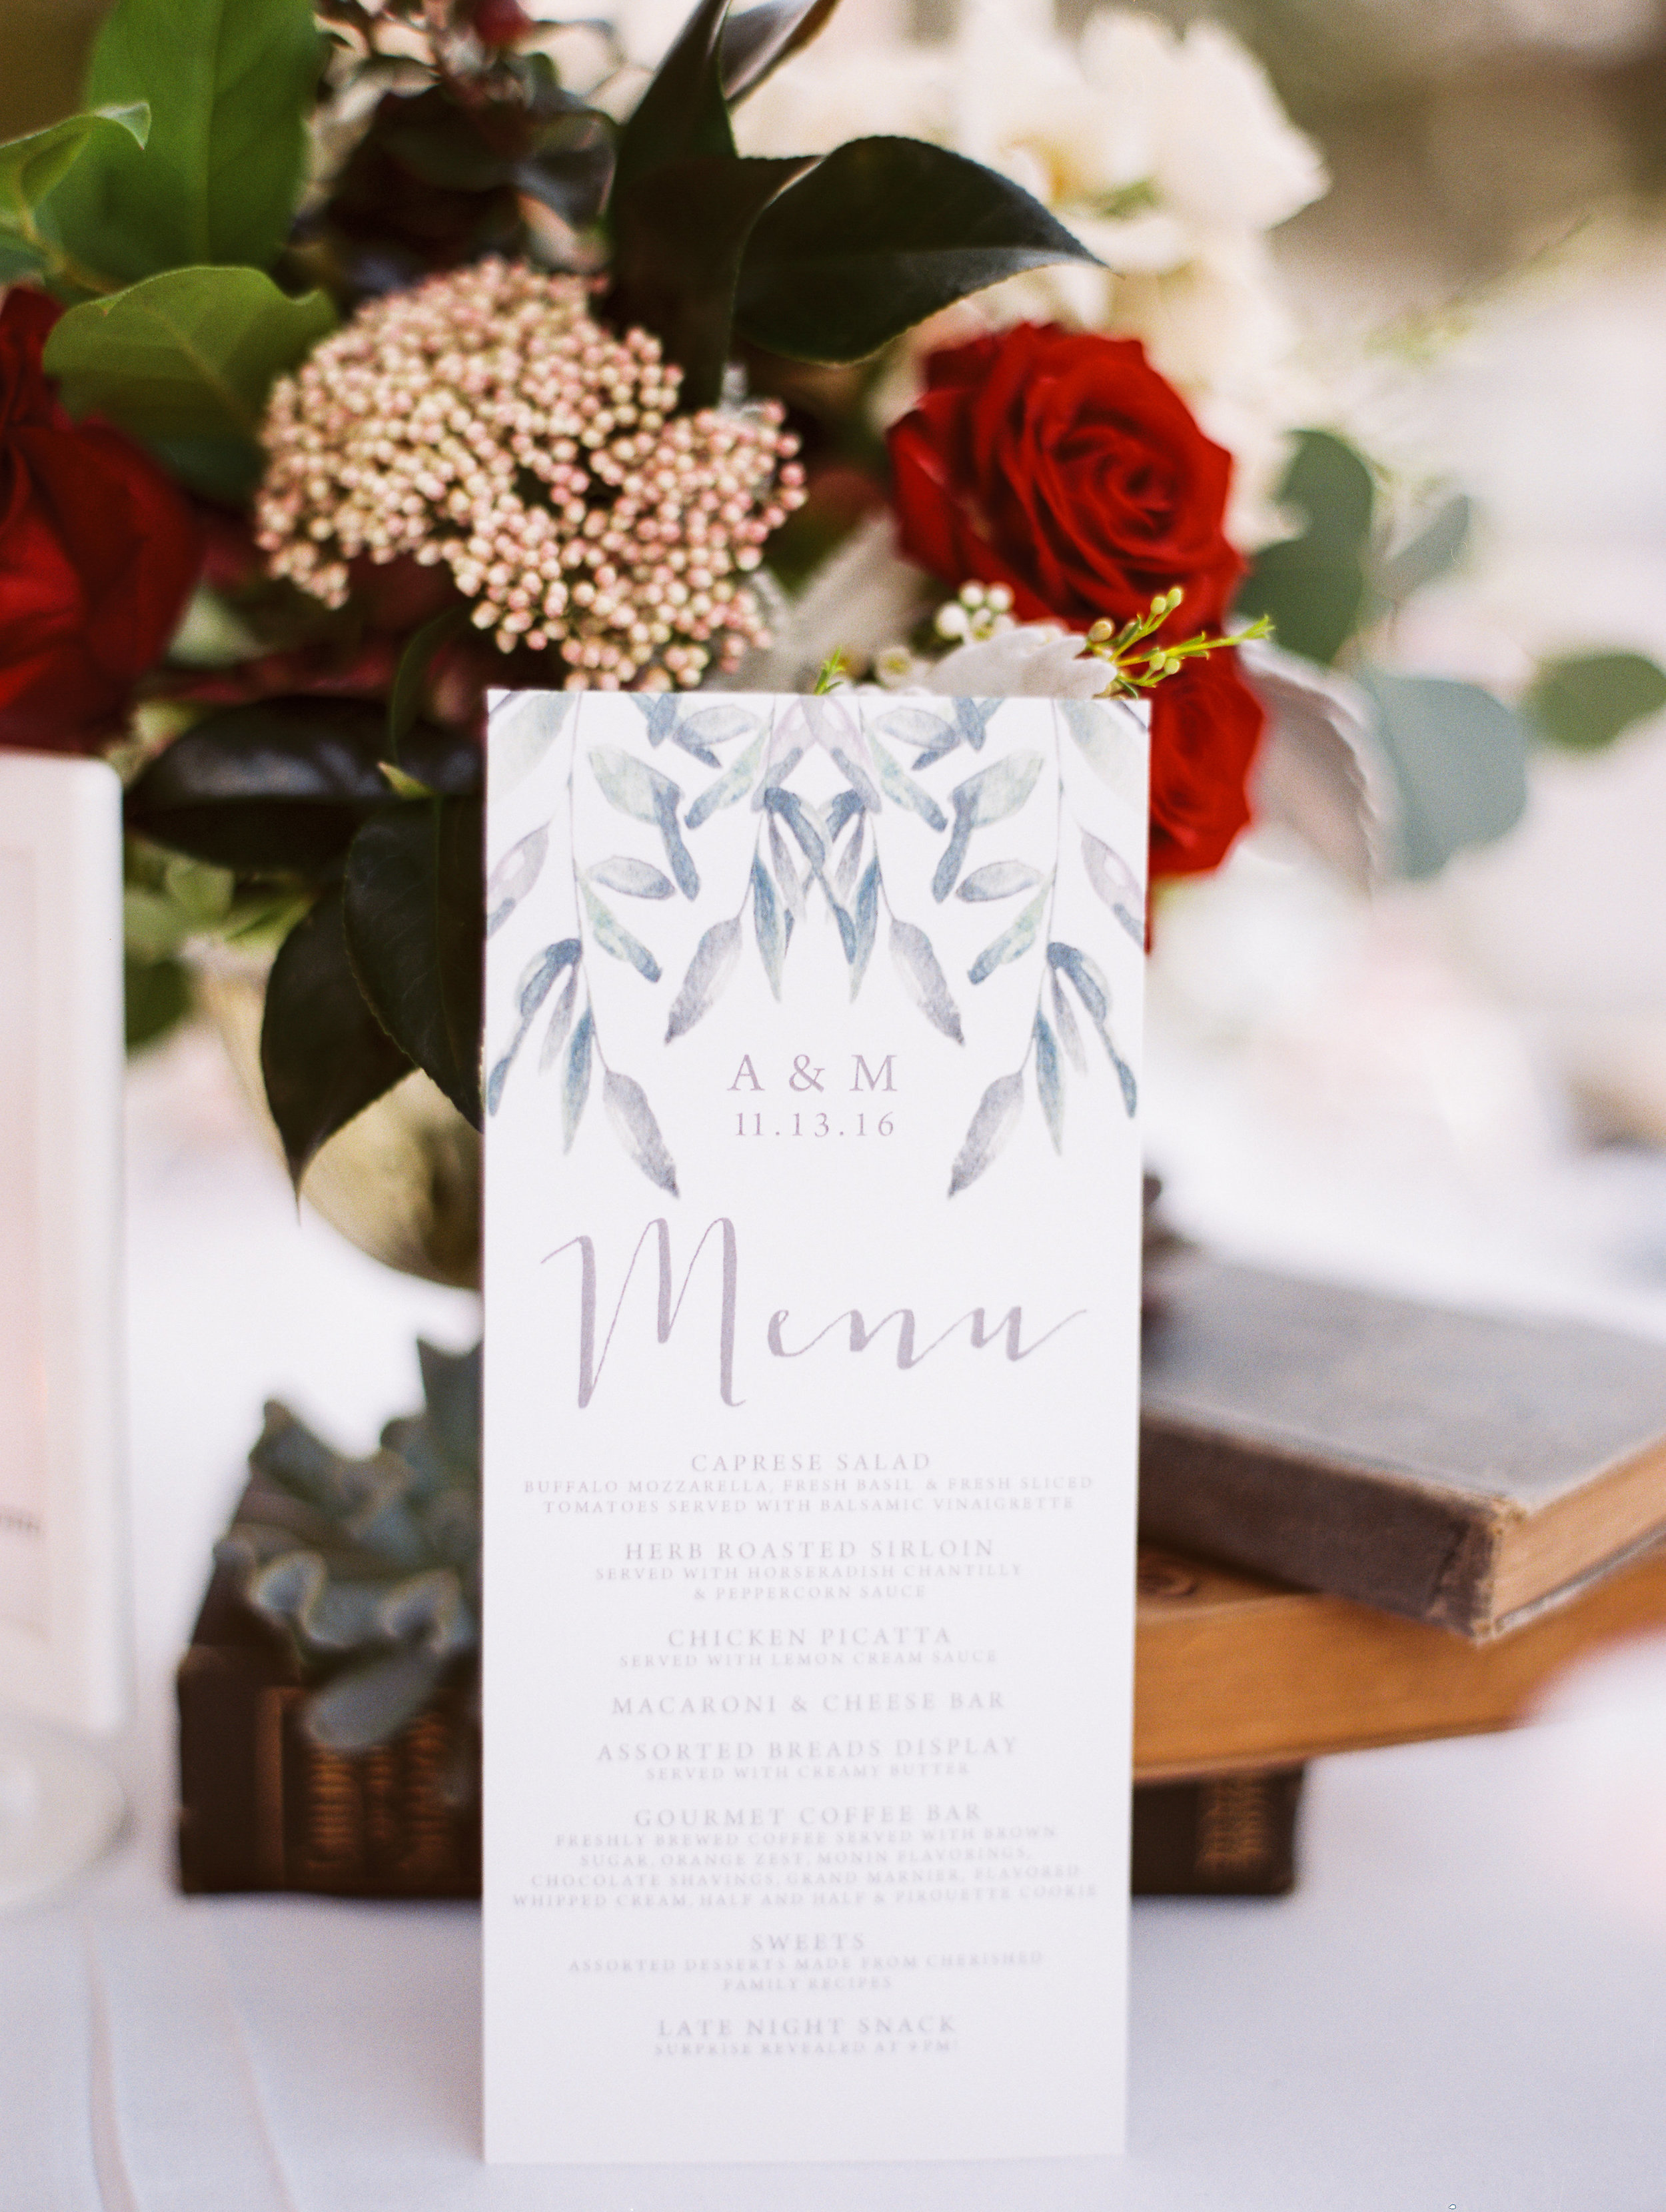 Menu cards framed with greenery displayed at every place setting for guests.